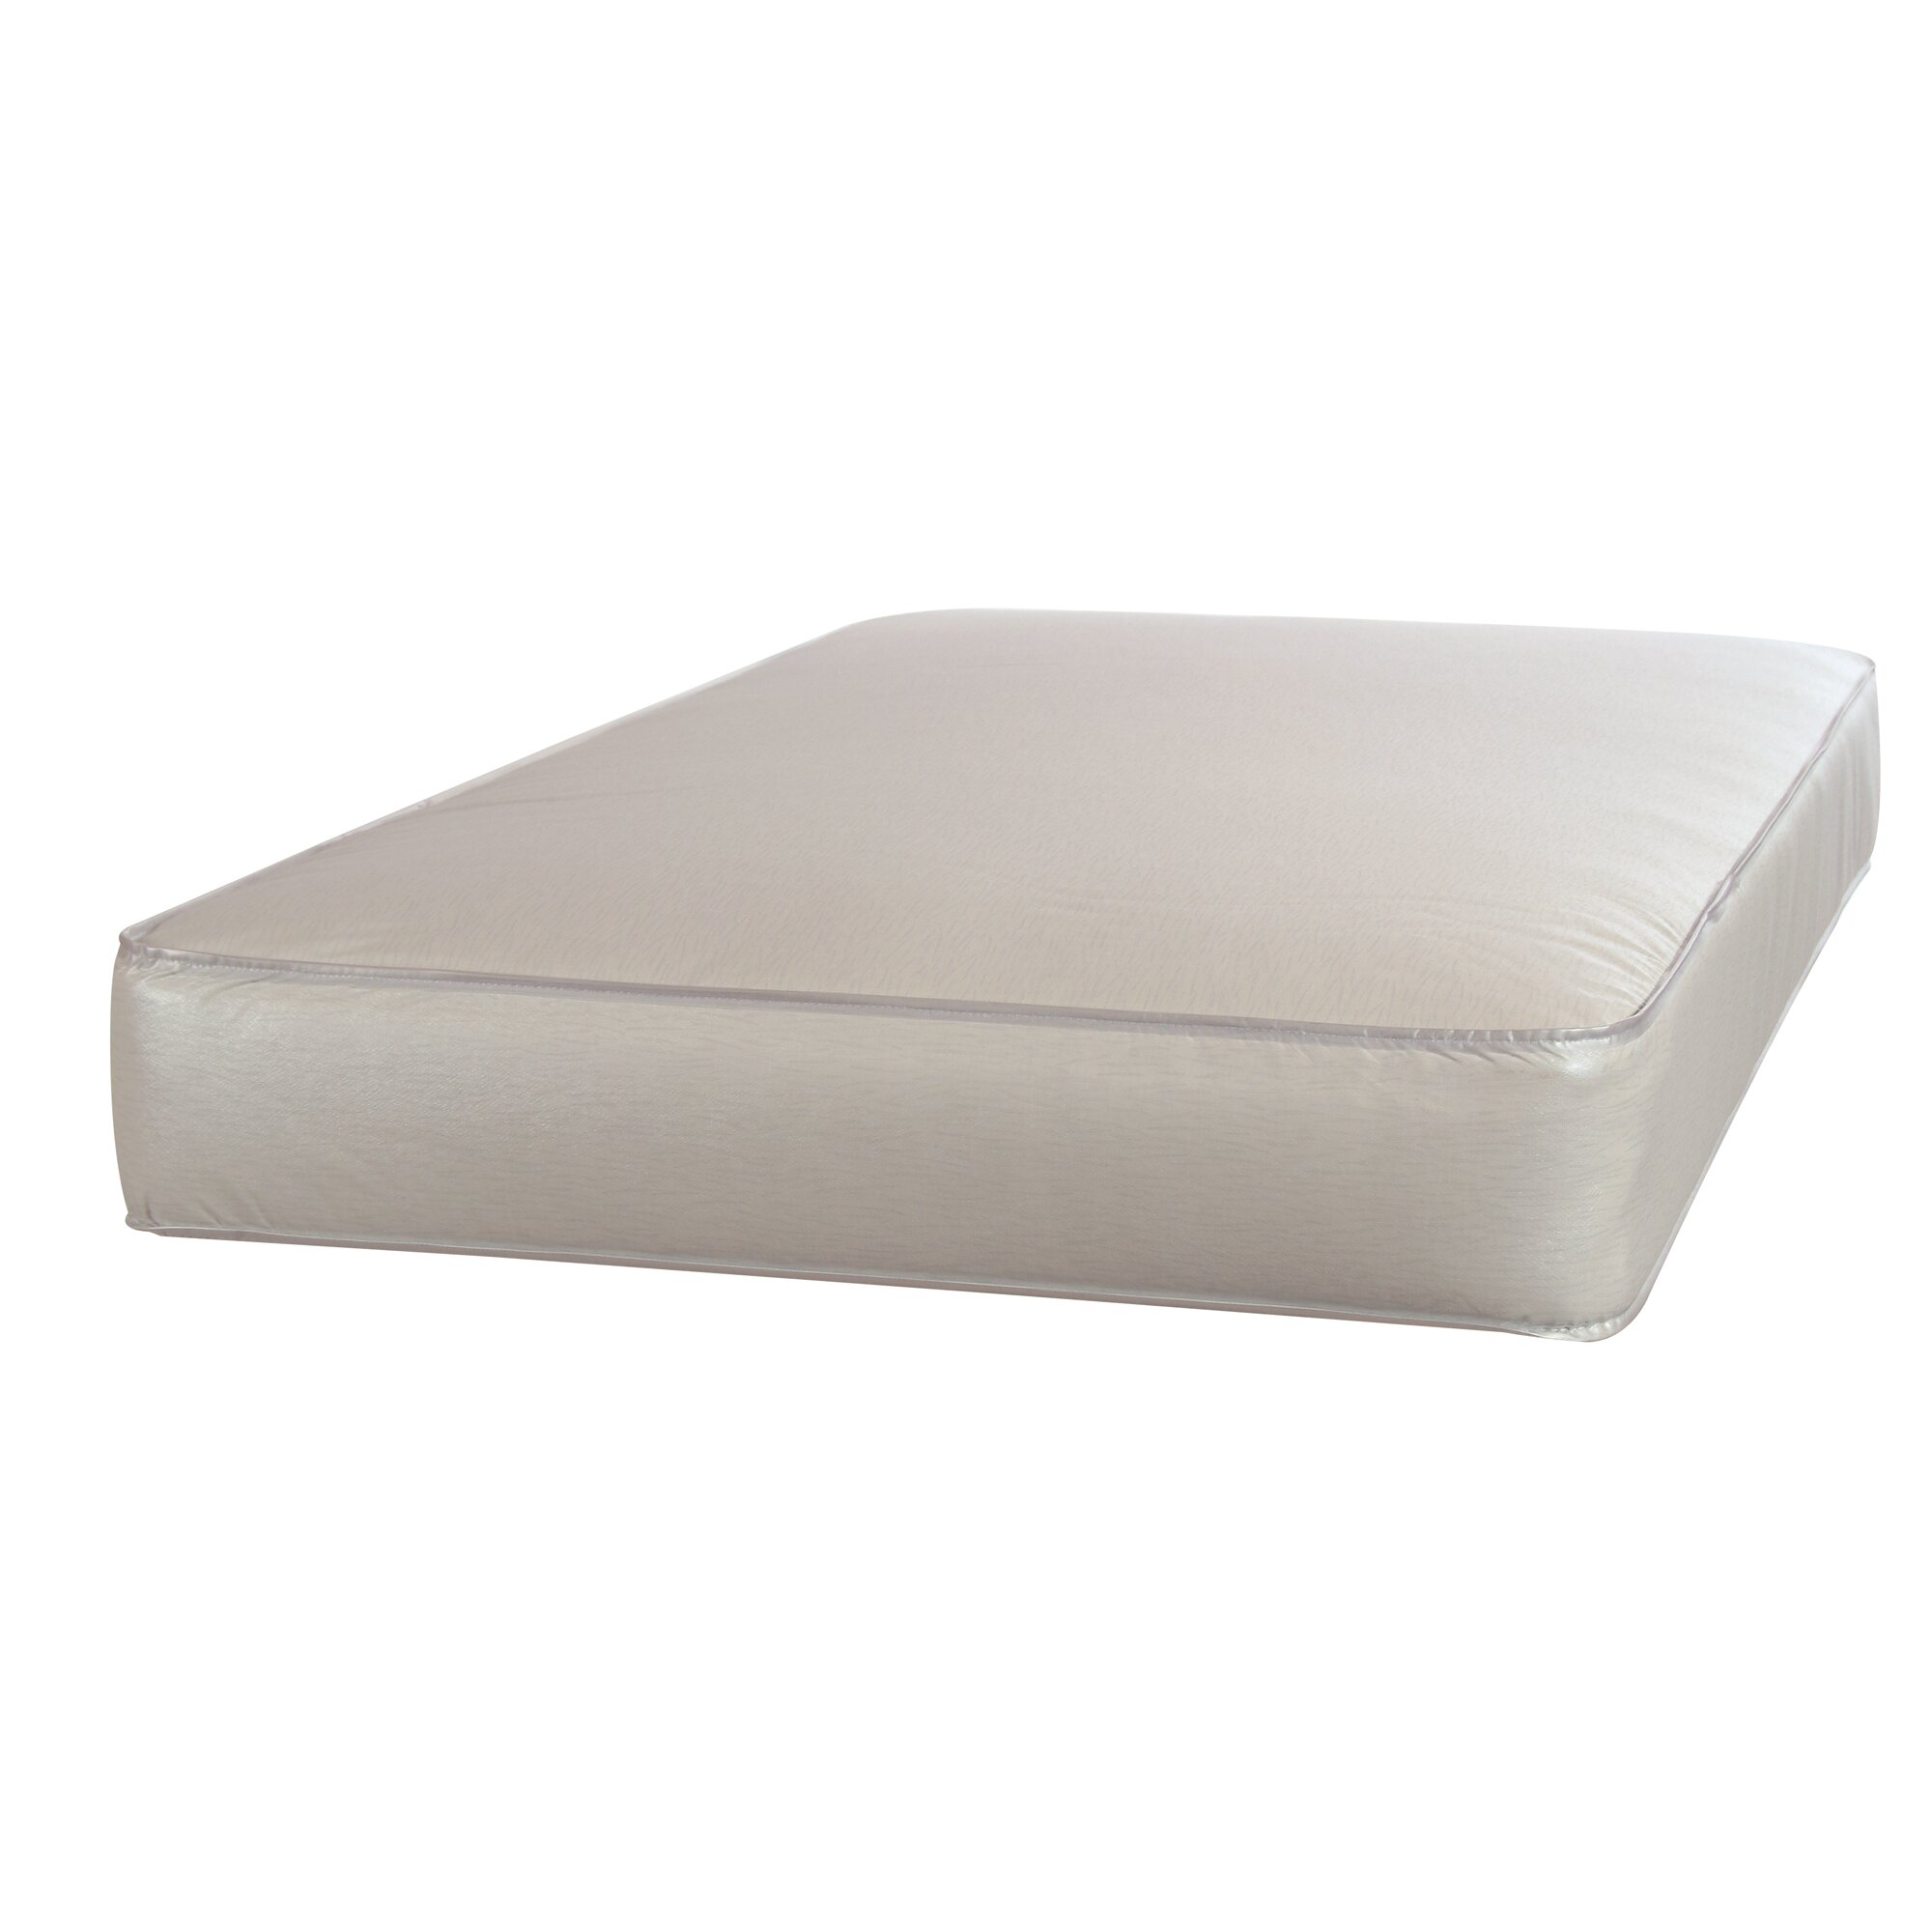 """Sealy Perfect Rest 5 25"""" Crib & Toddler Bed Mattress"""